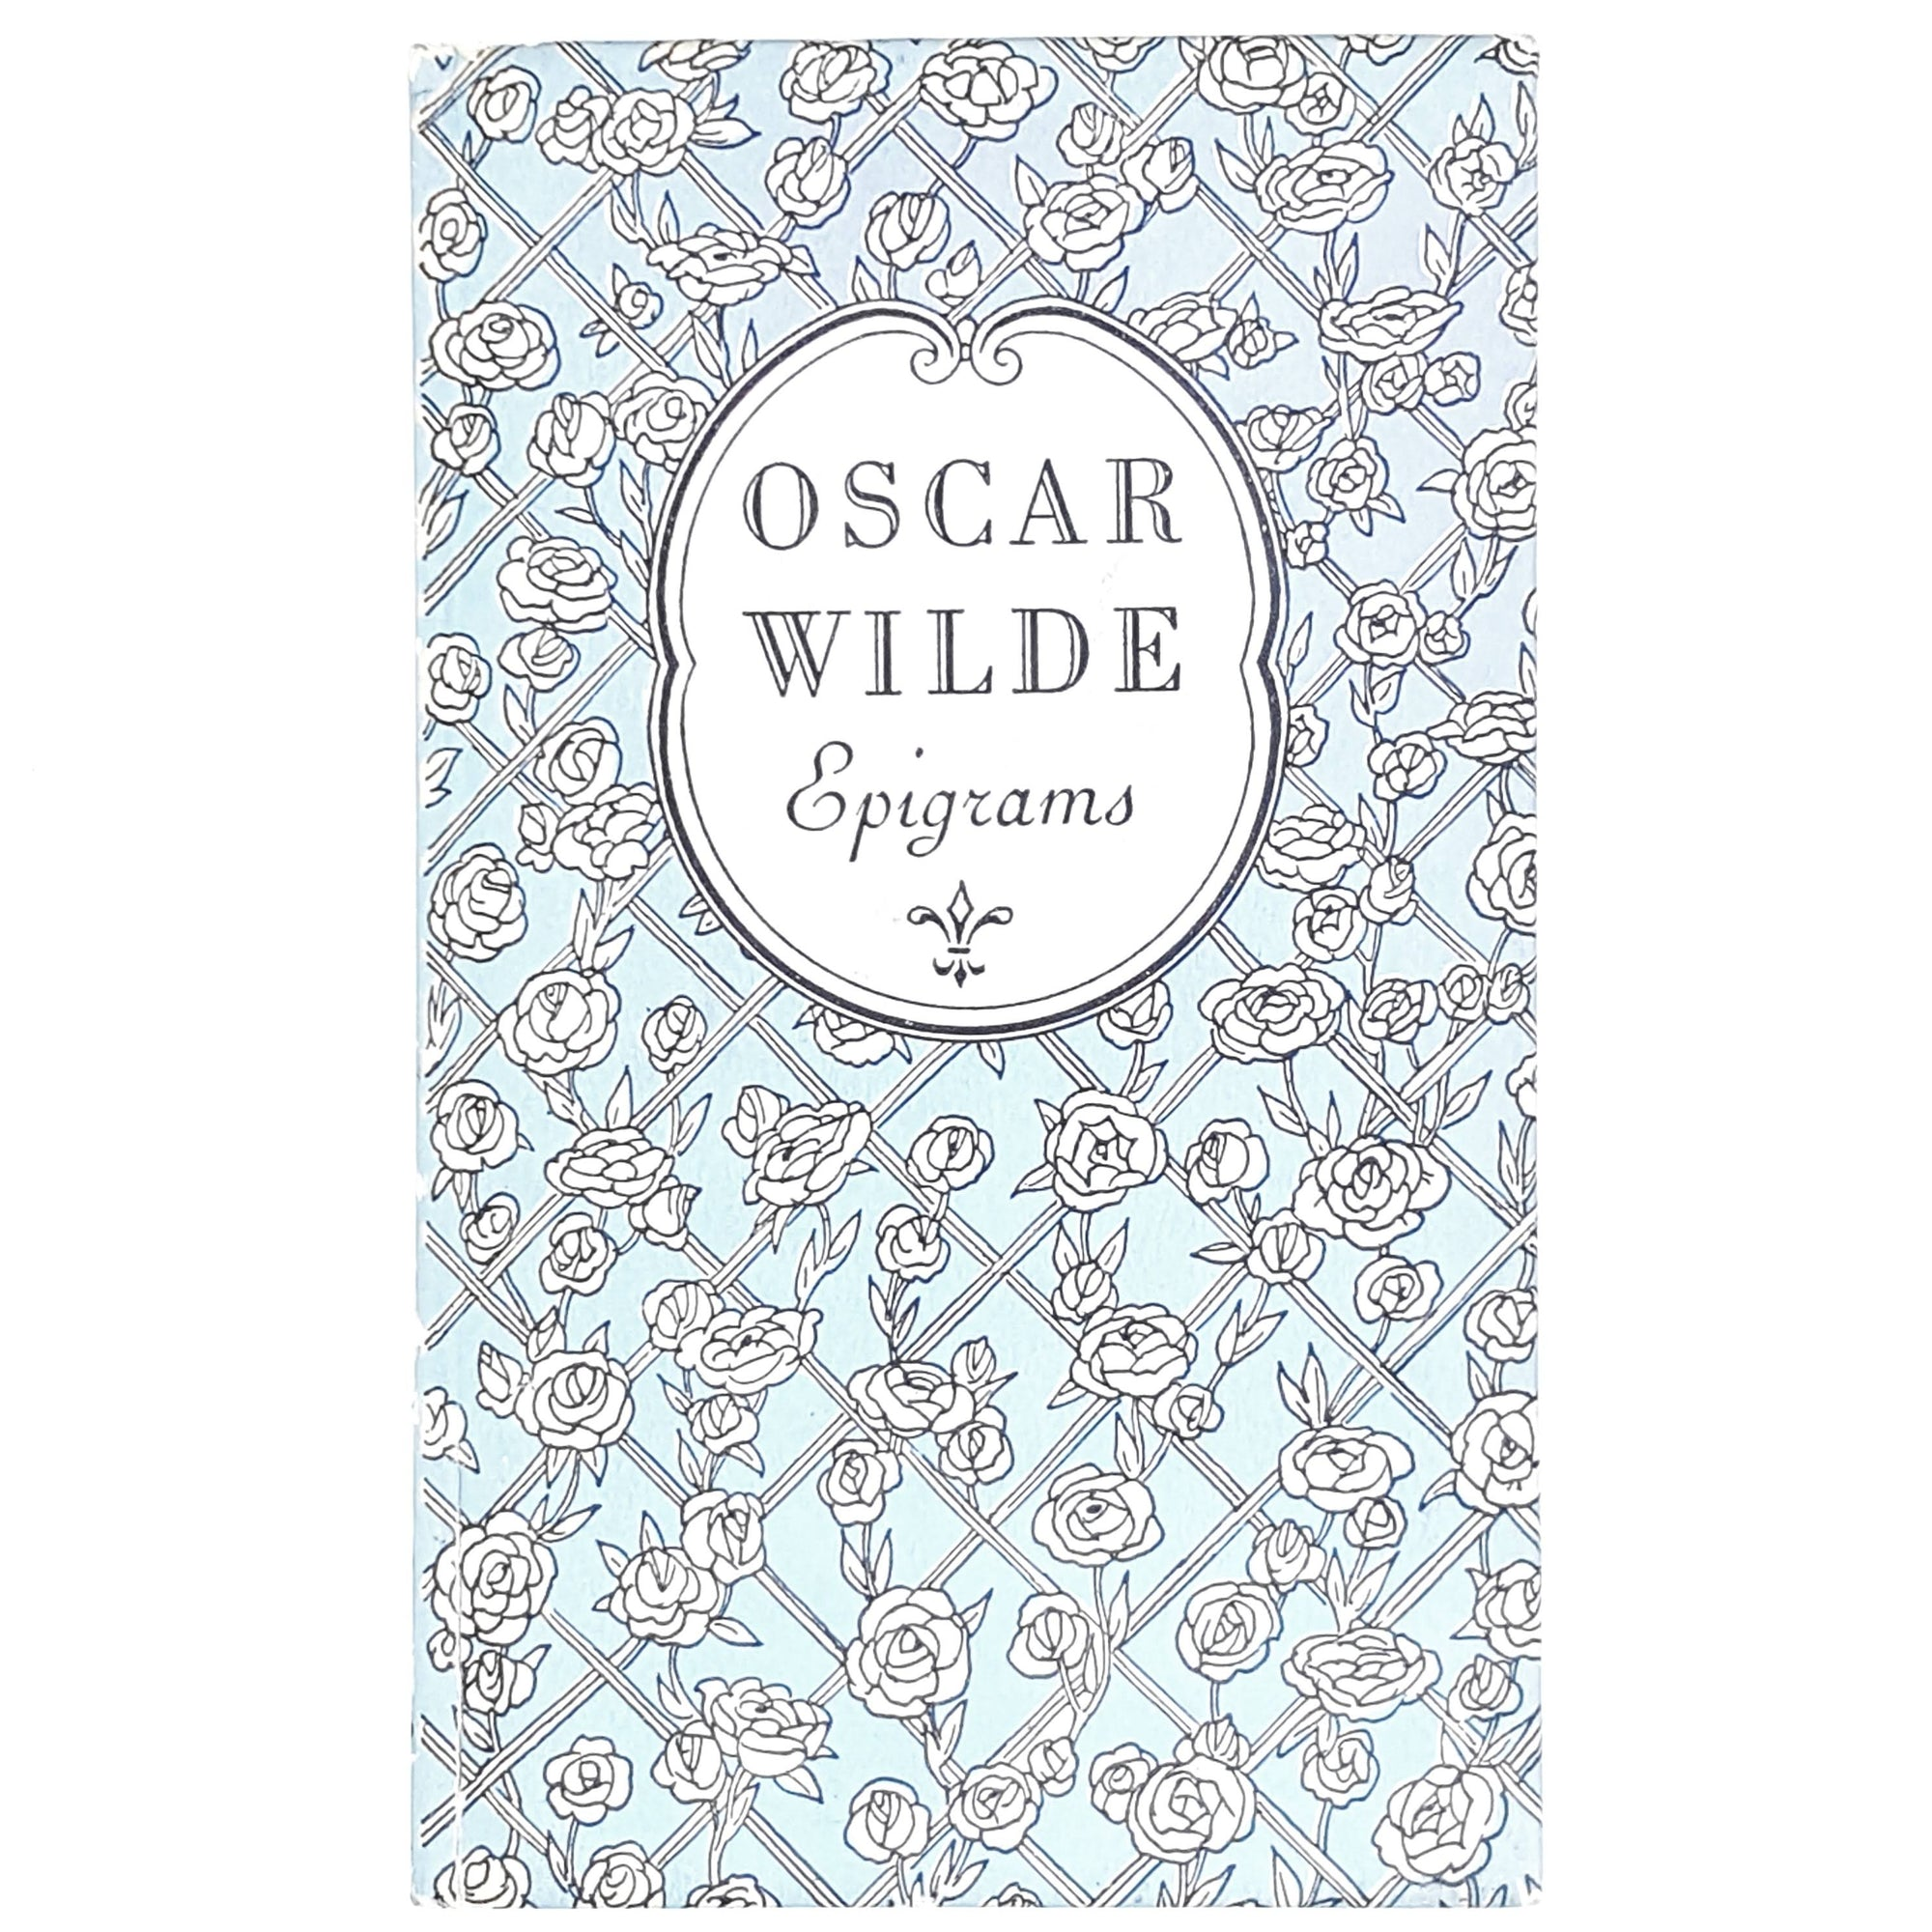 Oscar Wilde's Epigrams illustrated